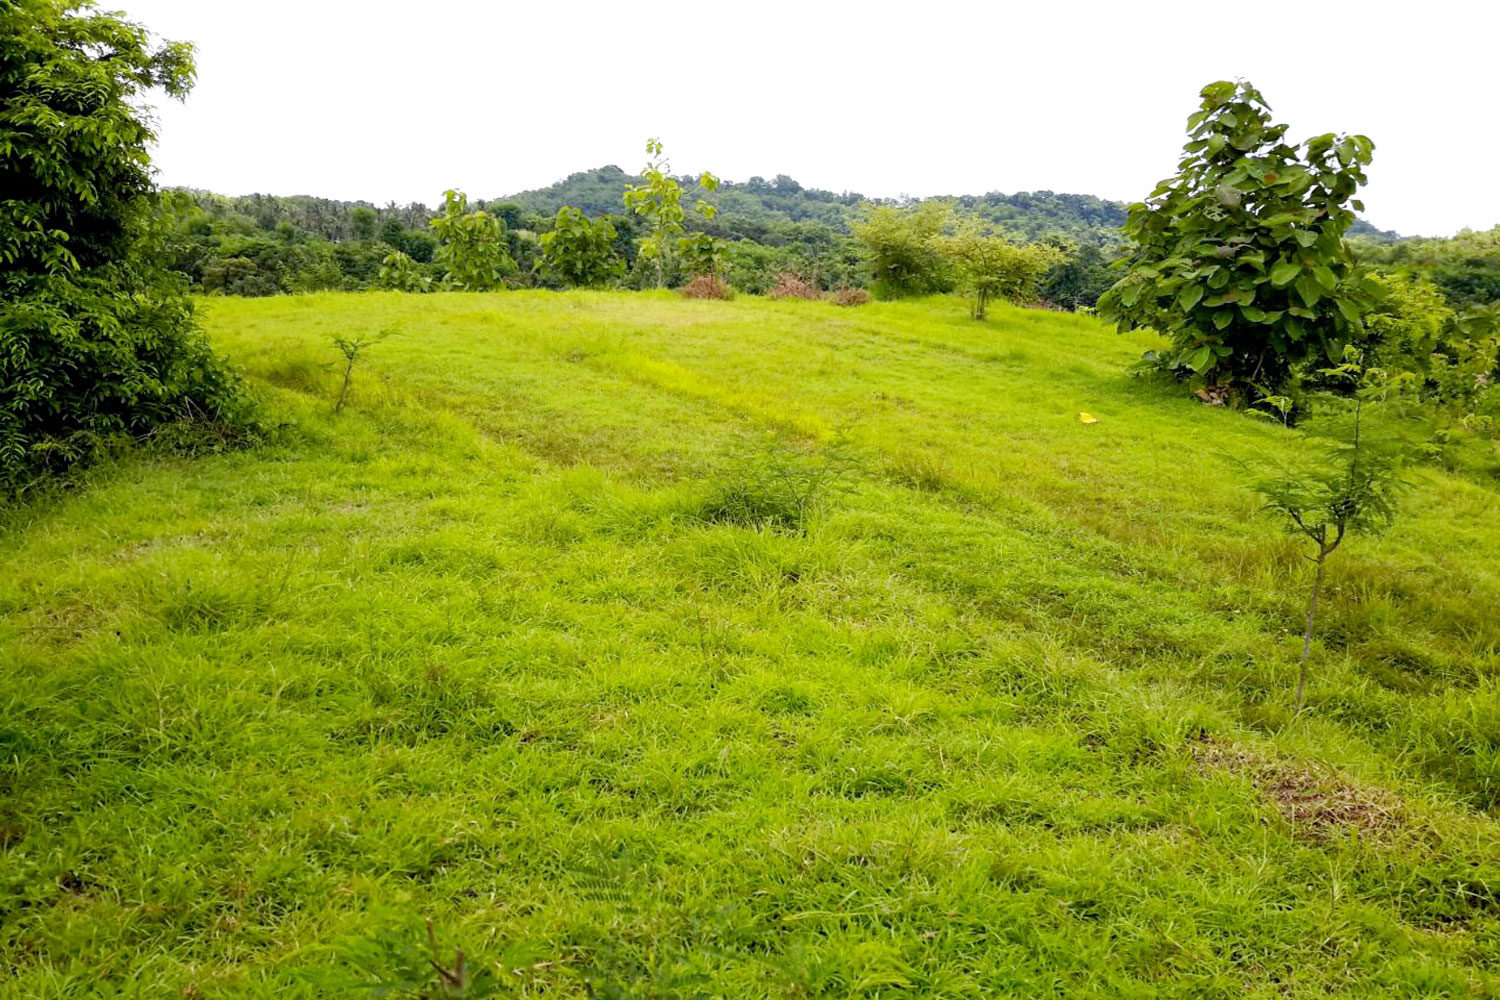 Bali Ocean View land for sale freehold